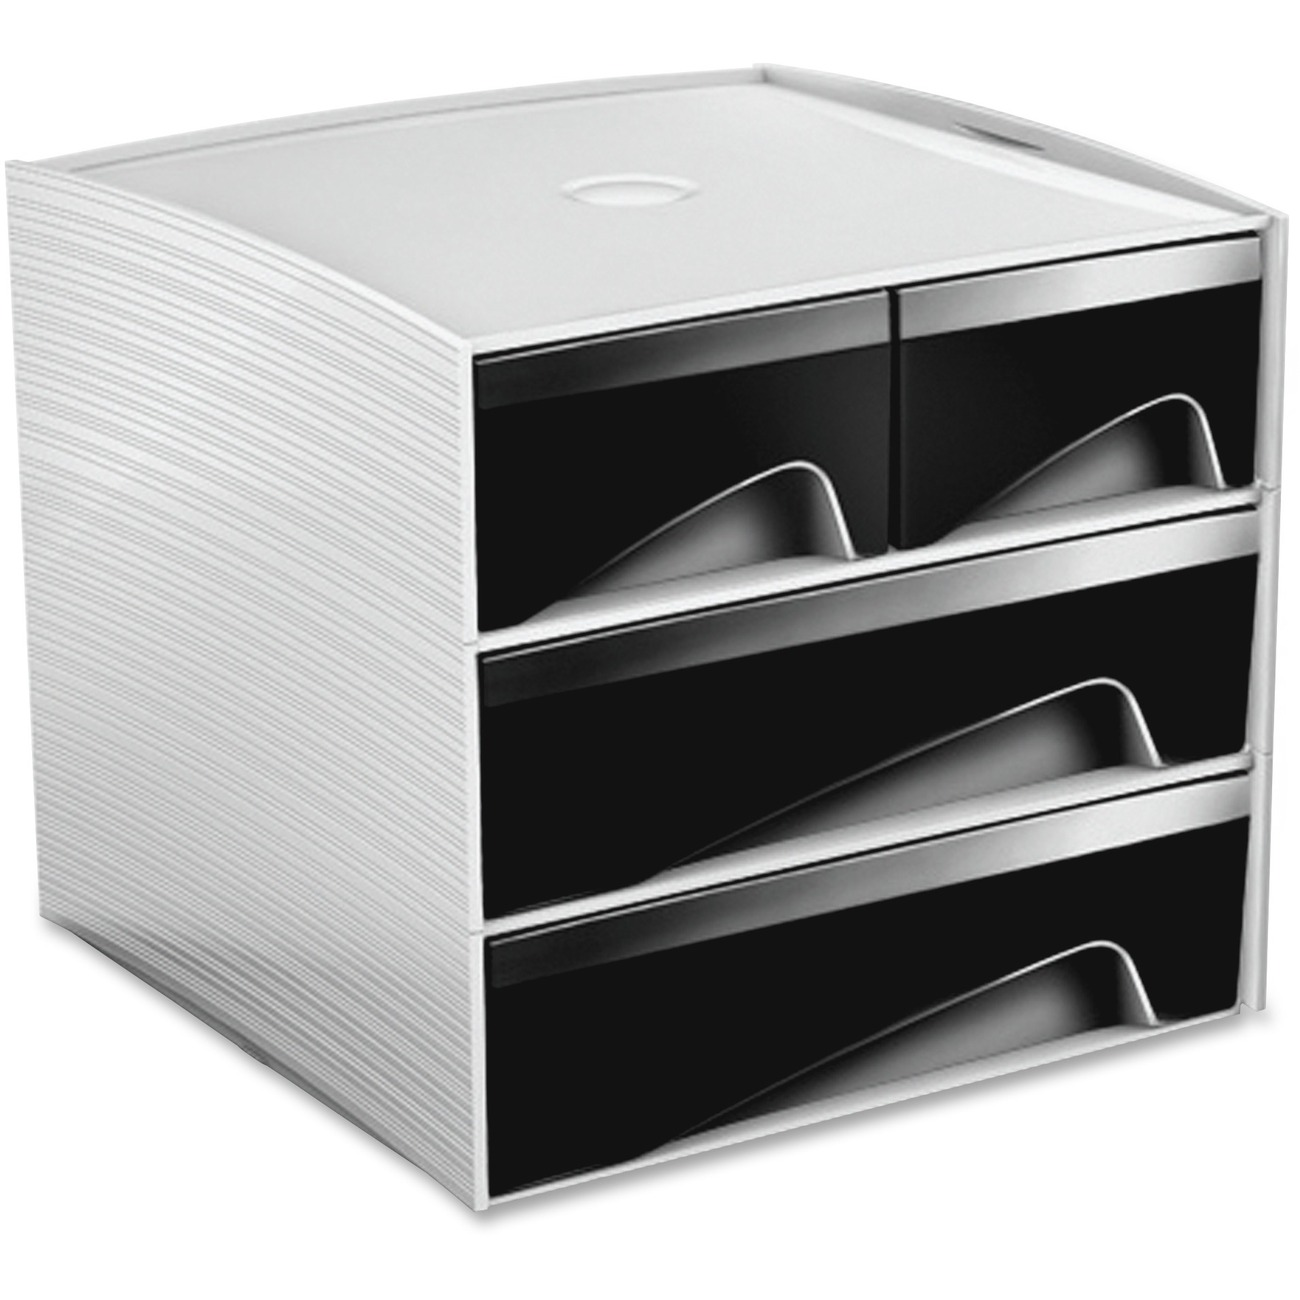 Stylish Way To Organize Your Small Accessories And Office Supplies Ergonomic Recessed Handles Allow You Comfortably Access Stackable